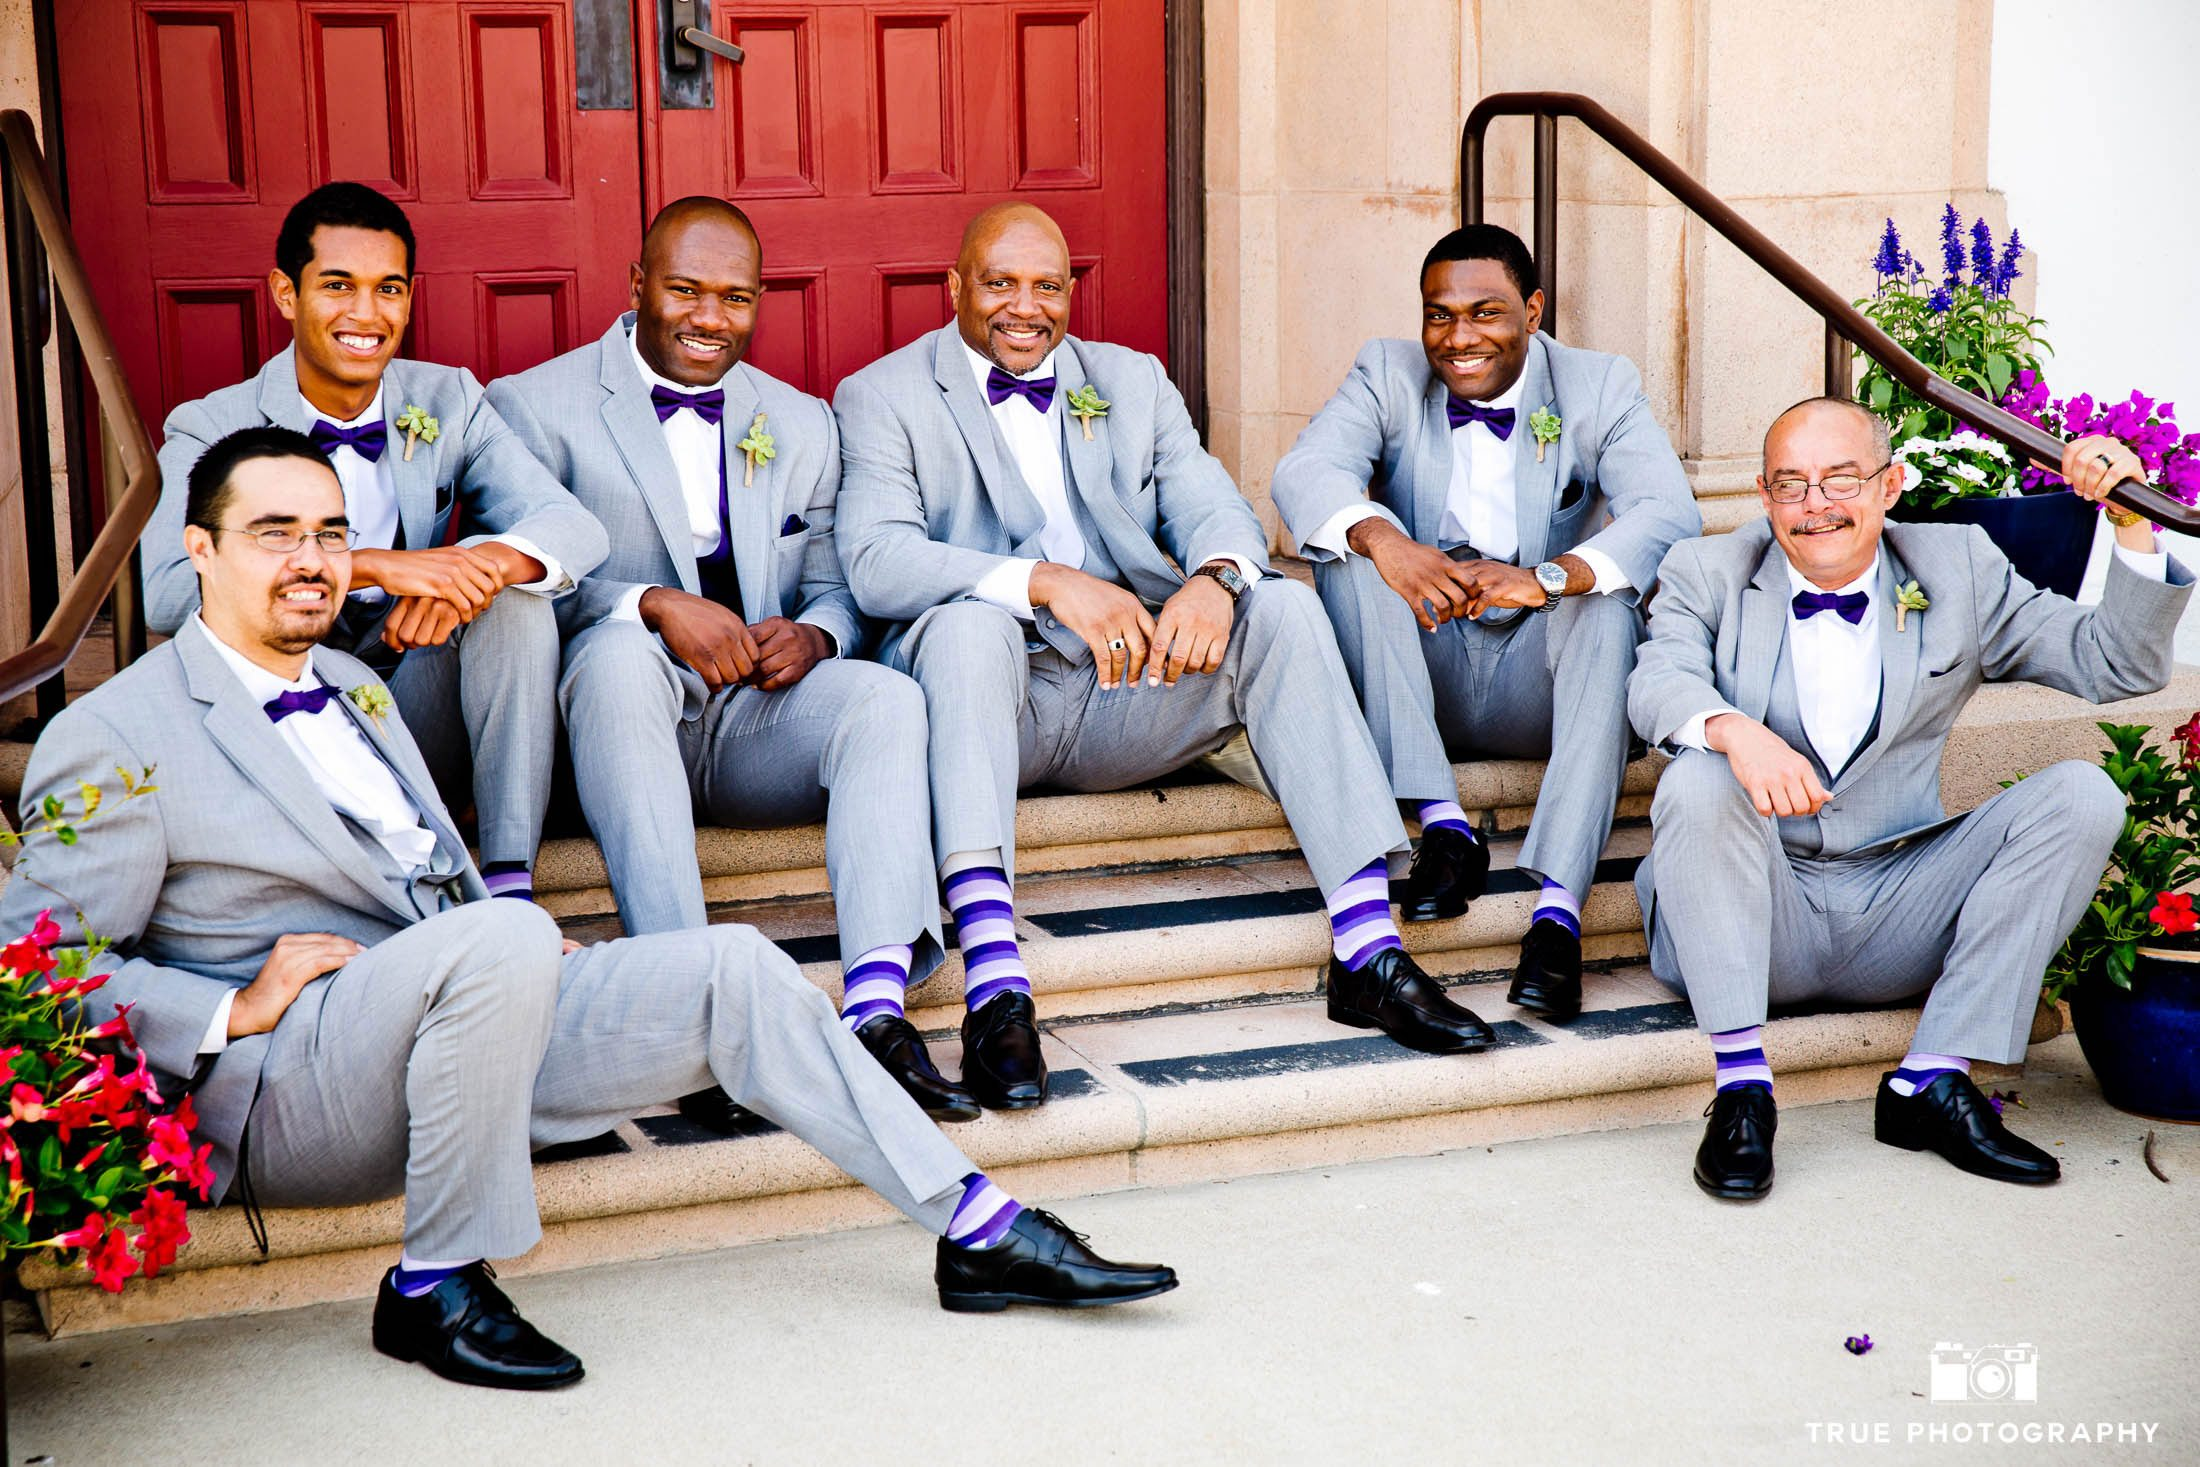 Groomsmen sit casually on steps